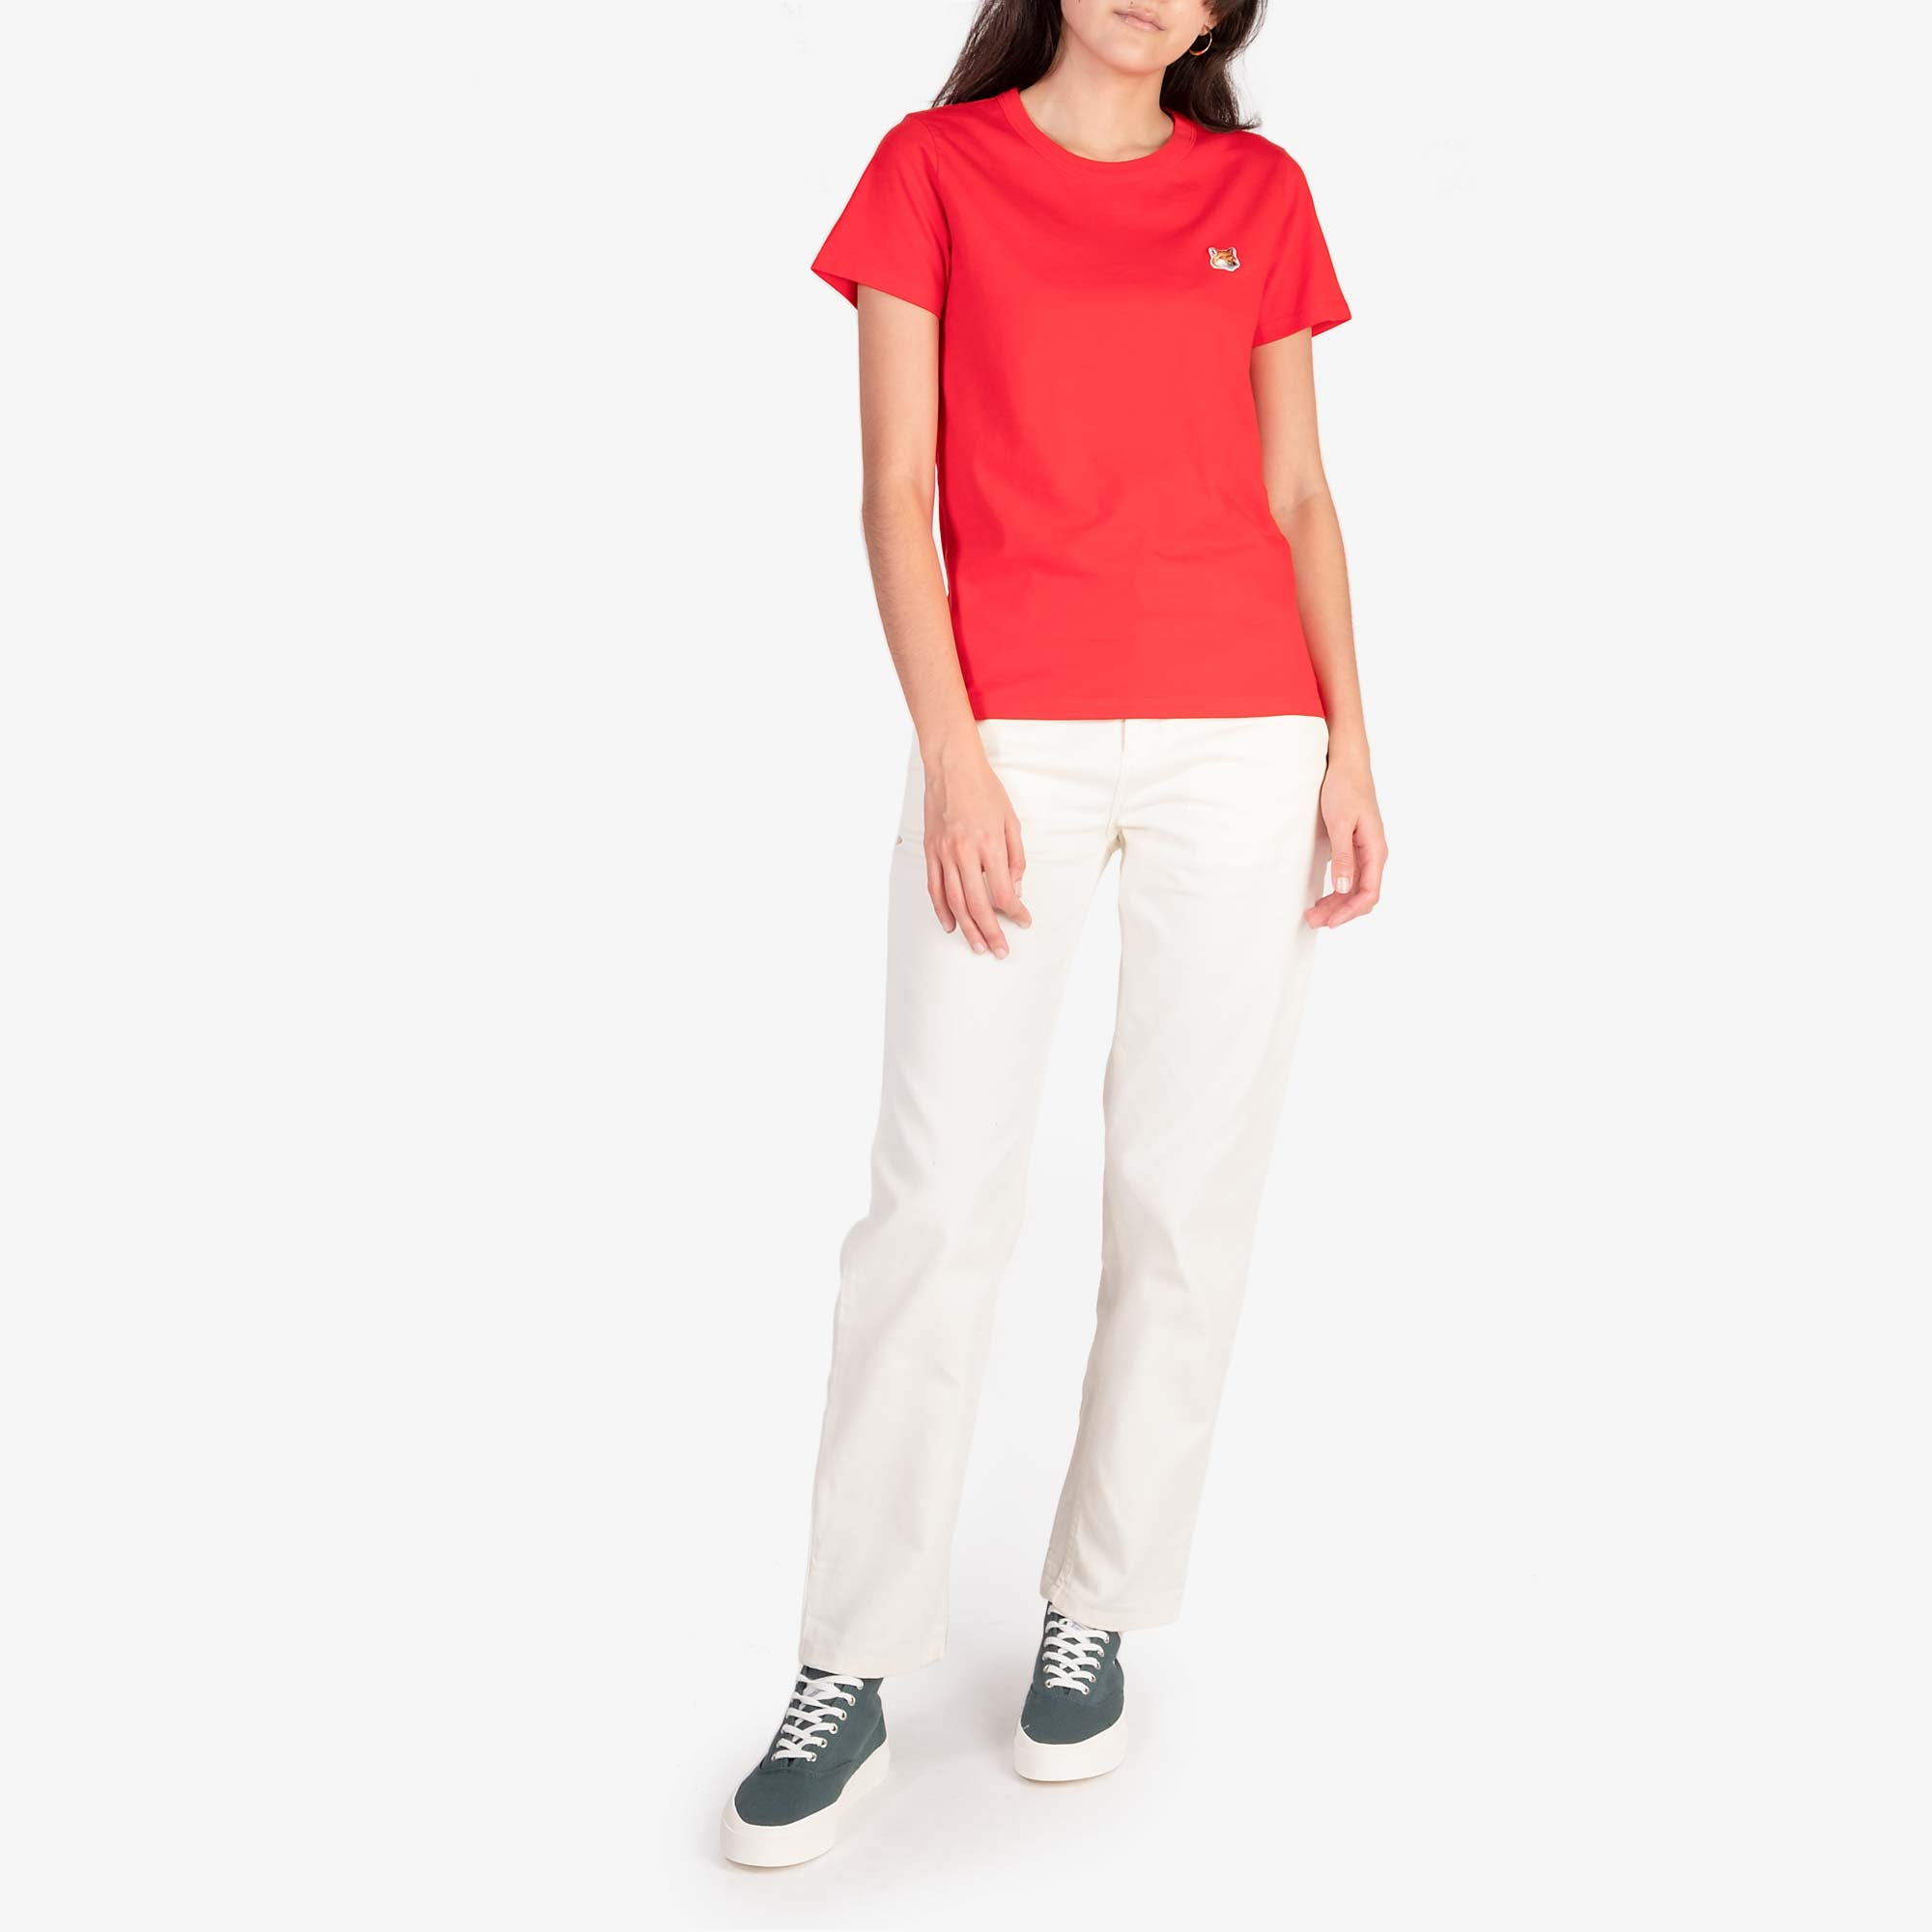 Maison Kitsune Women's Fox Head Patch Tee - Red 3